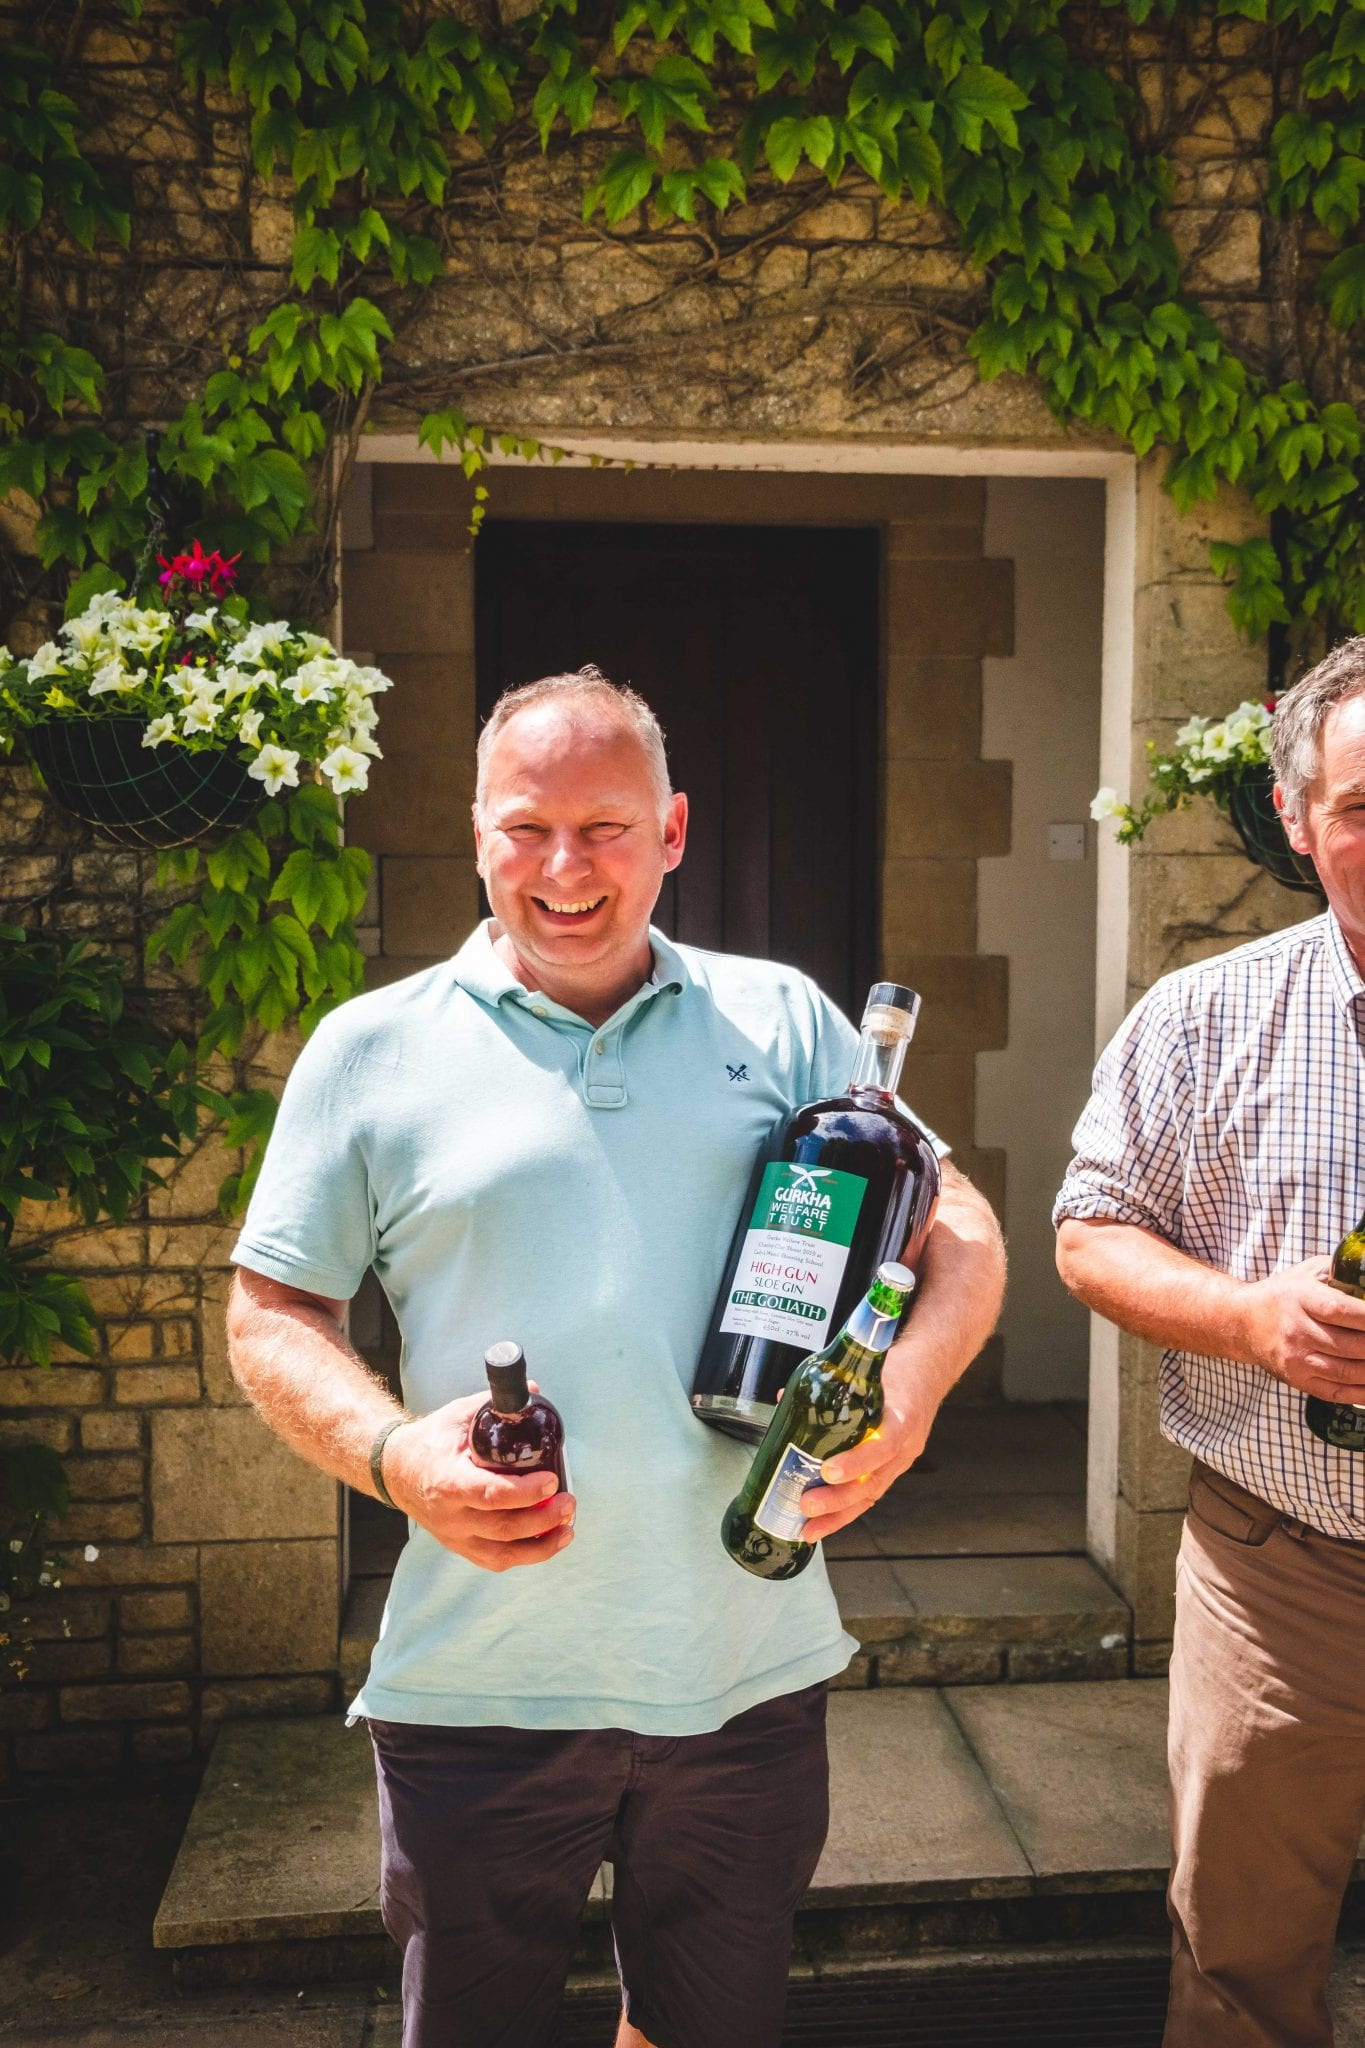 The individual winner from the Gurkha Welfare Trust Charity Shoot at Lady's Wood Shooting School holds his prize of a giant bottle of sloe gin